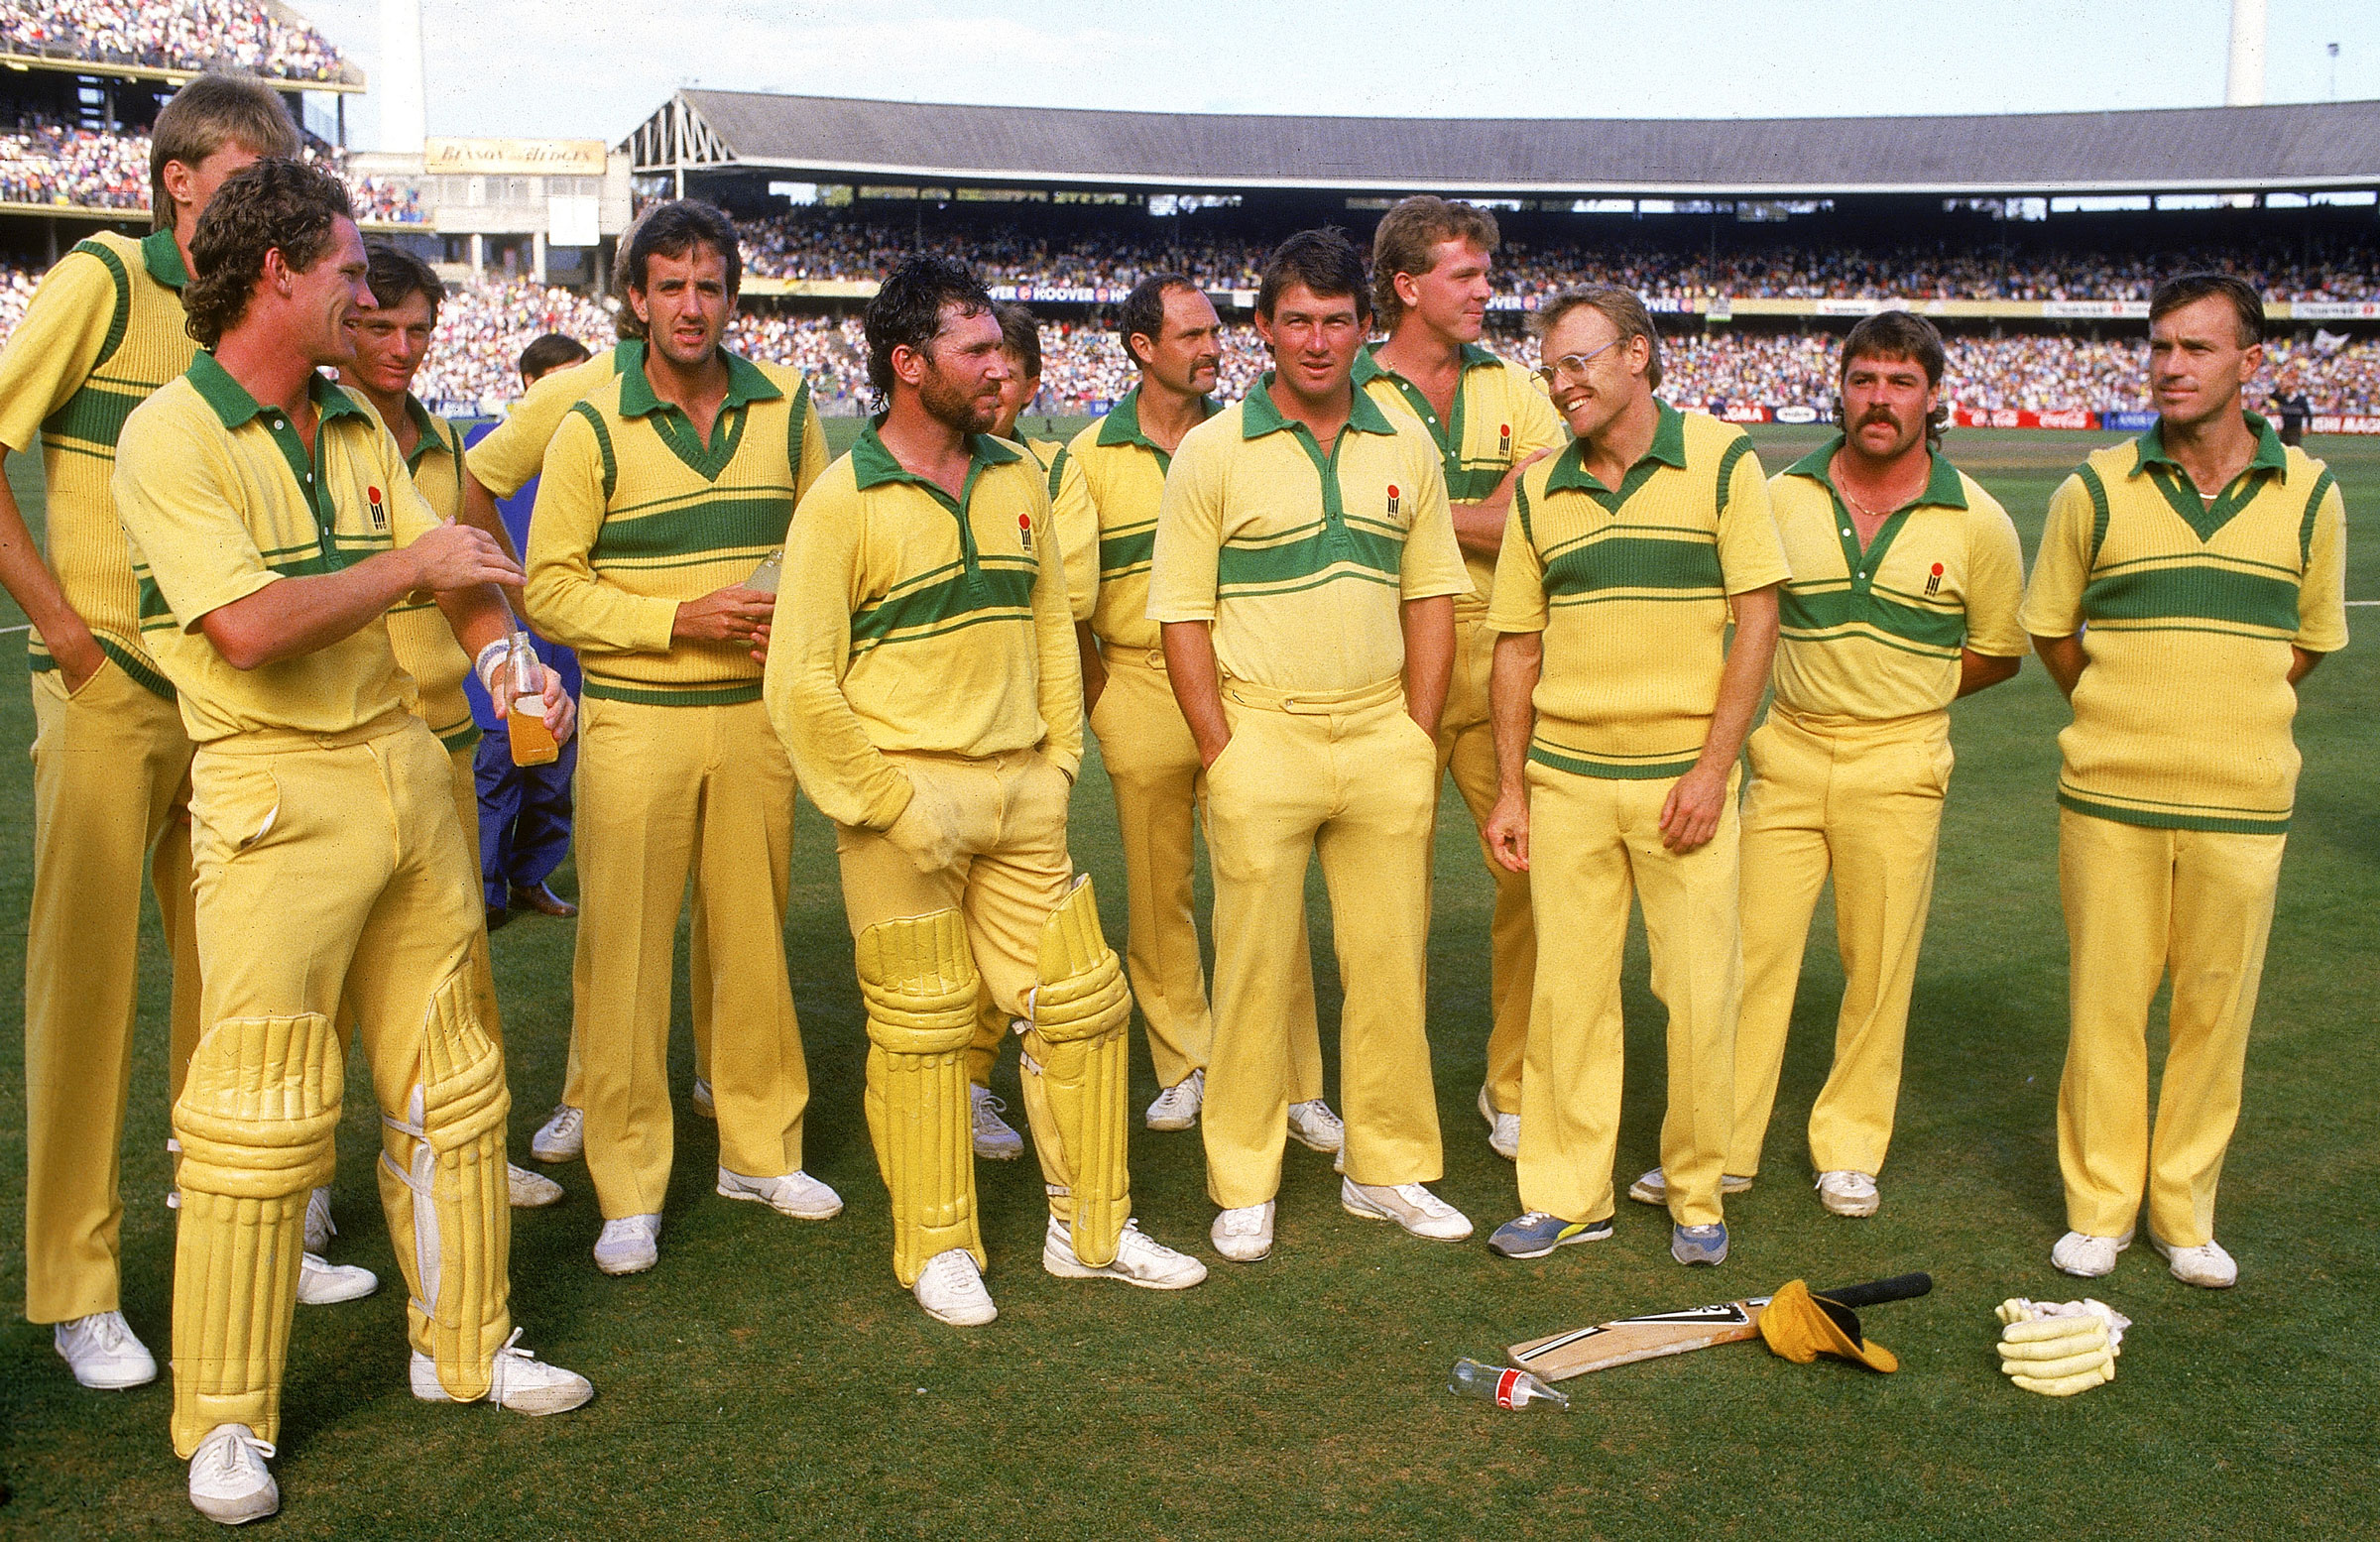 Australia's ODI side in 1986 // Getty Images